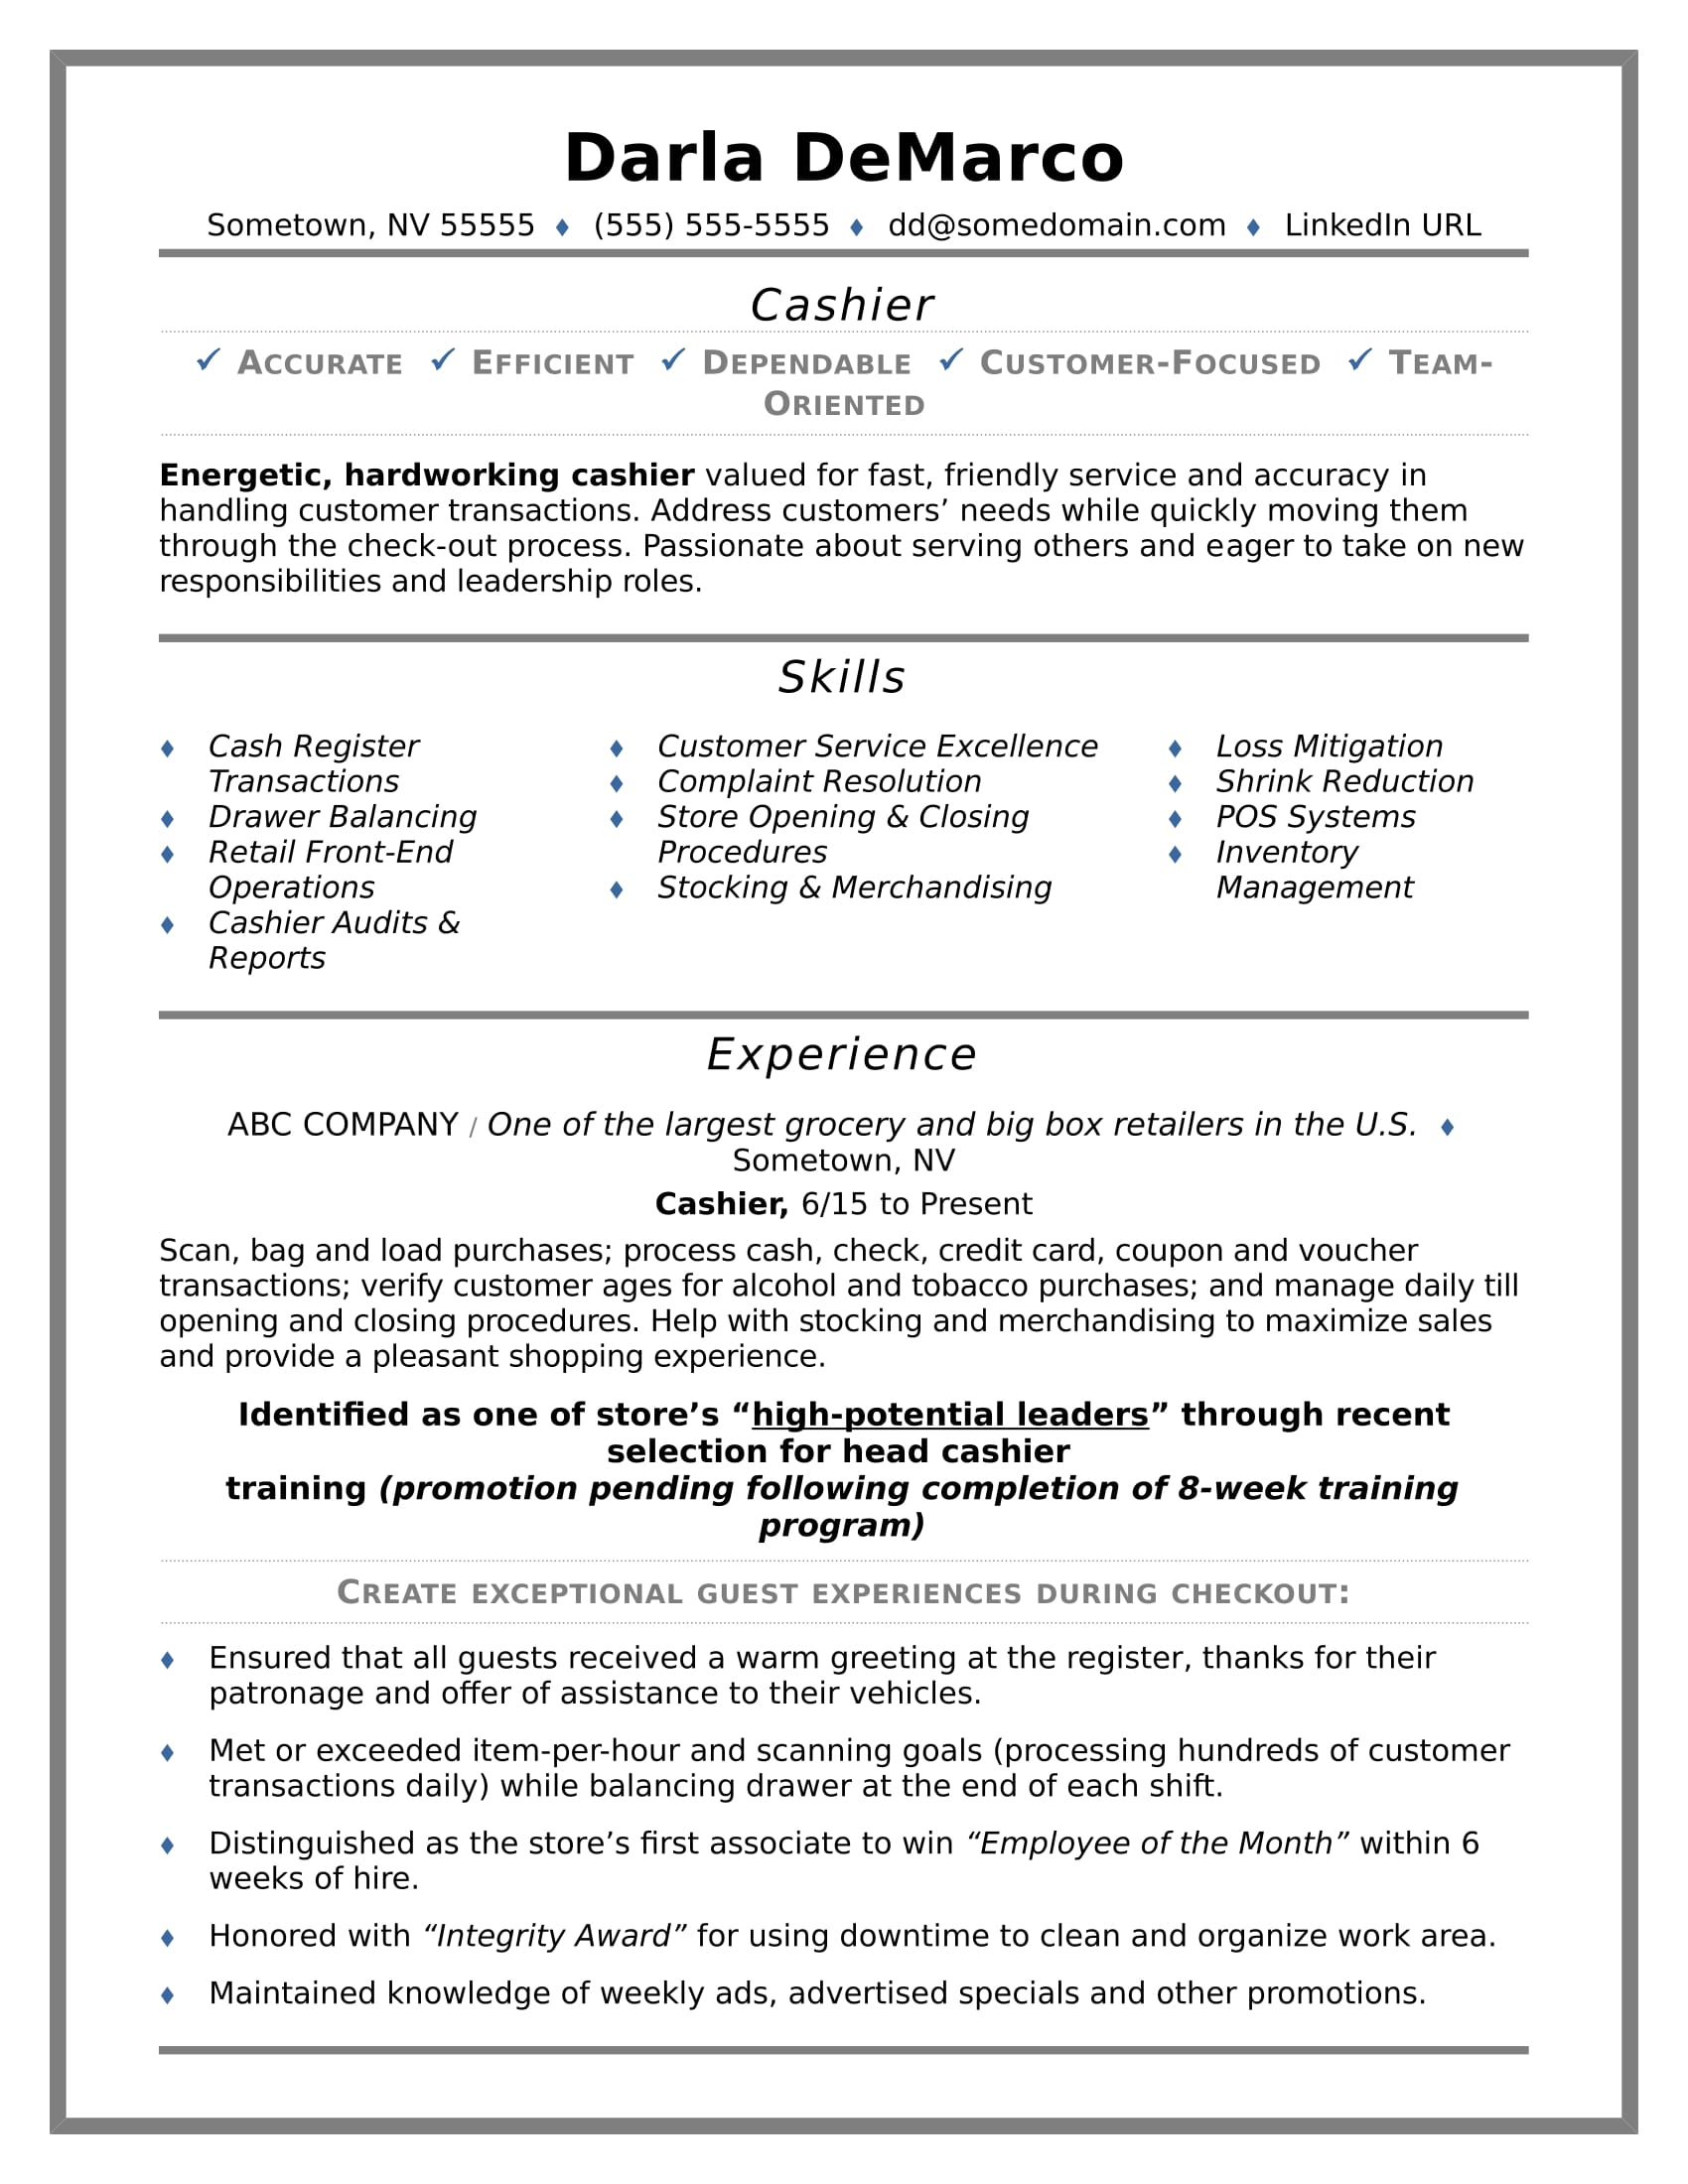 Resume Sampl | Cashier Resume Sample Monster Com